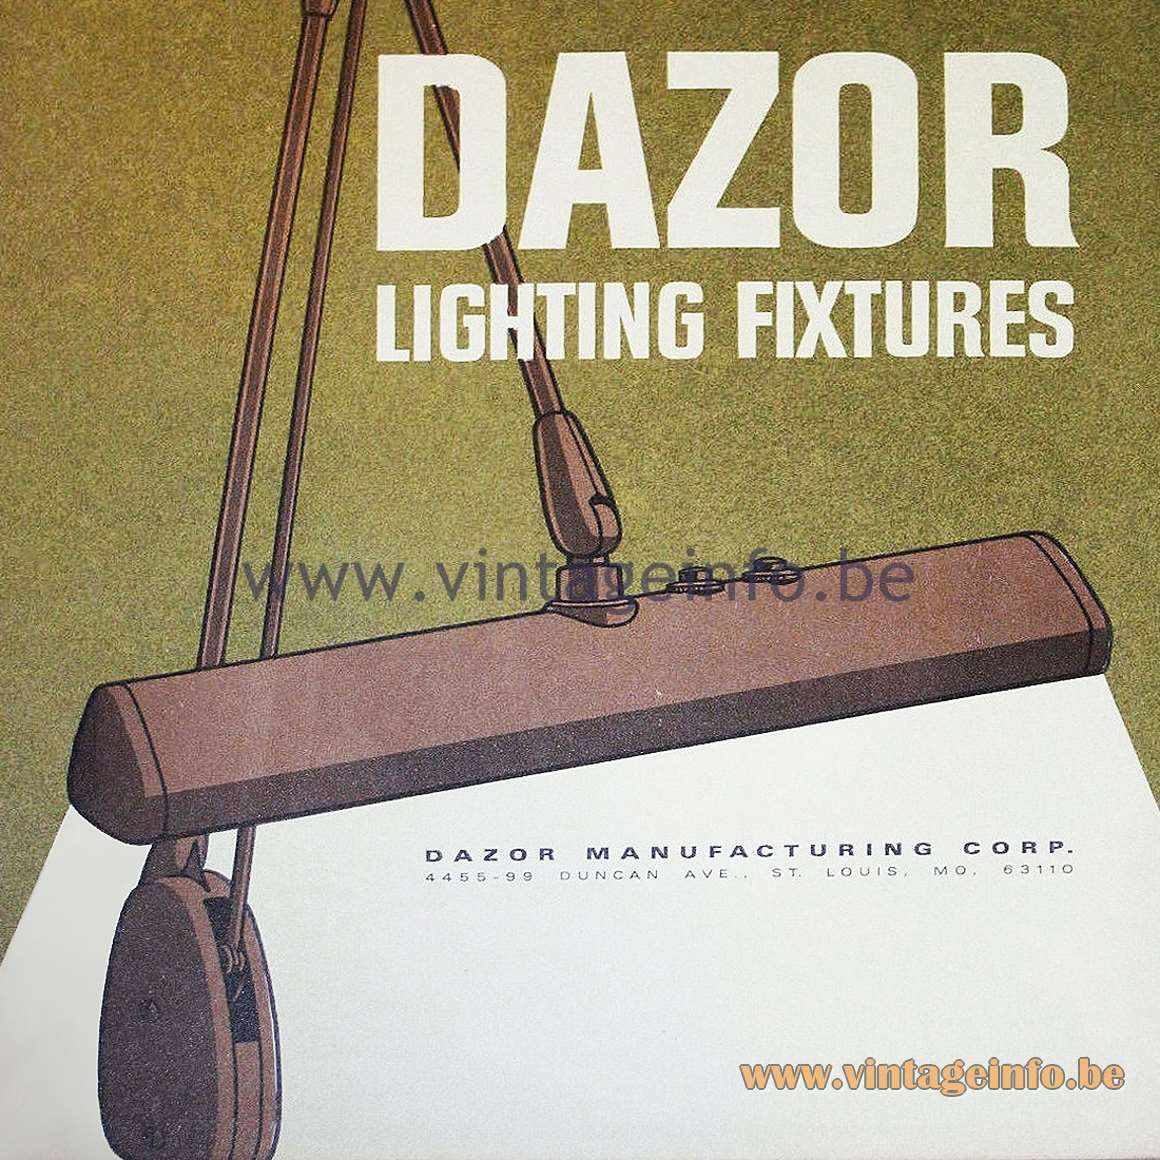 Dazor Floating Fixture 2324 Work Lamp - 1960s Catalogue